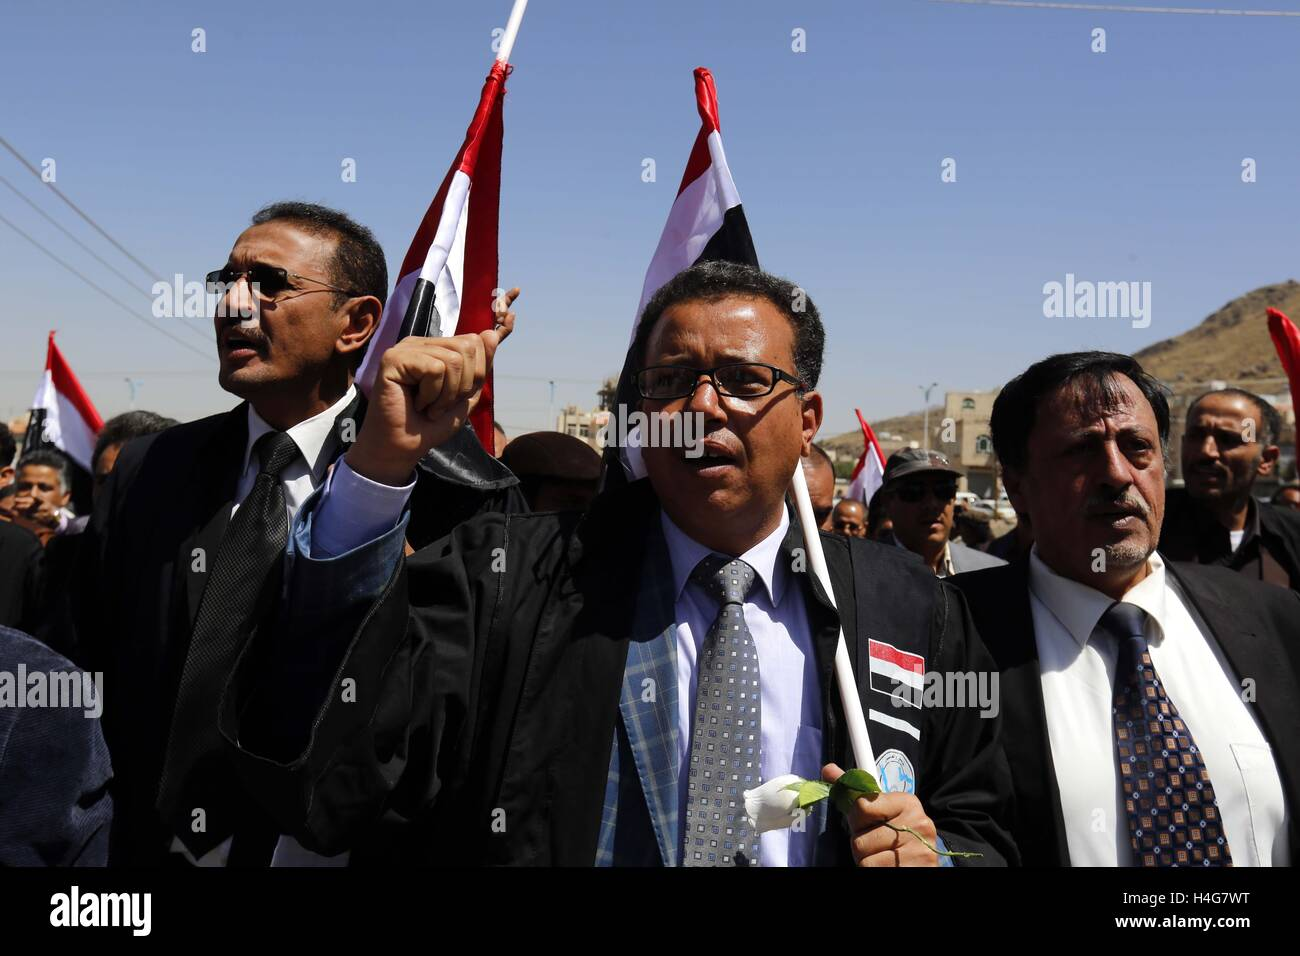 (161015) -- SANAA, Oct.15, 2016 (Xinhua) -- Yemenis shout slogans during a rally in solidarity and honor of the - Stock Image